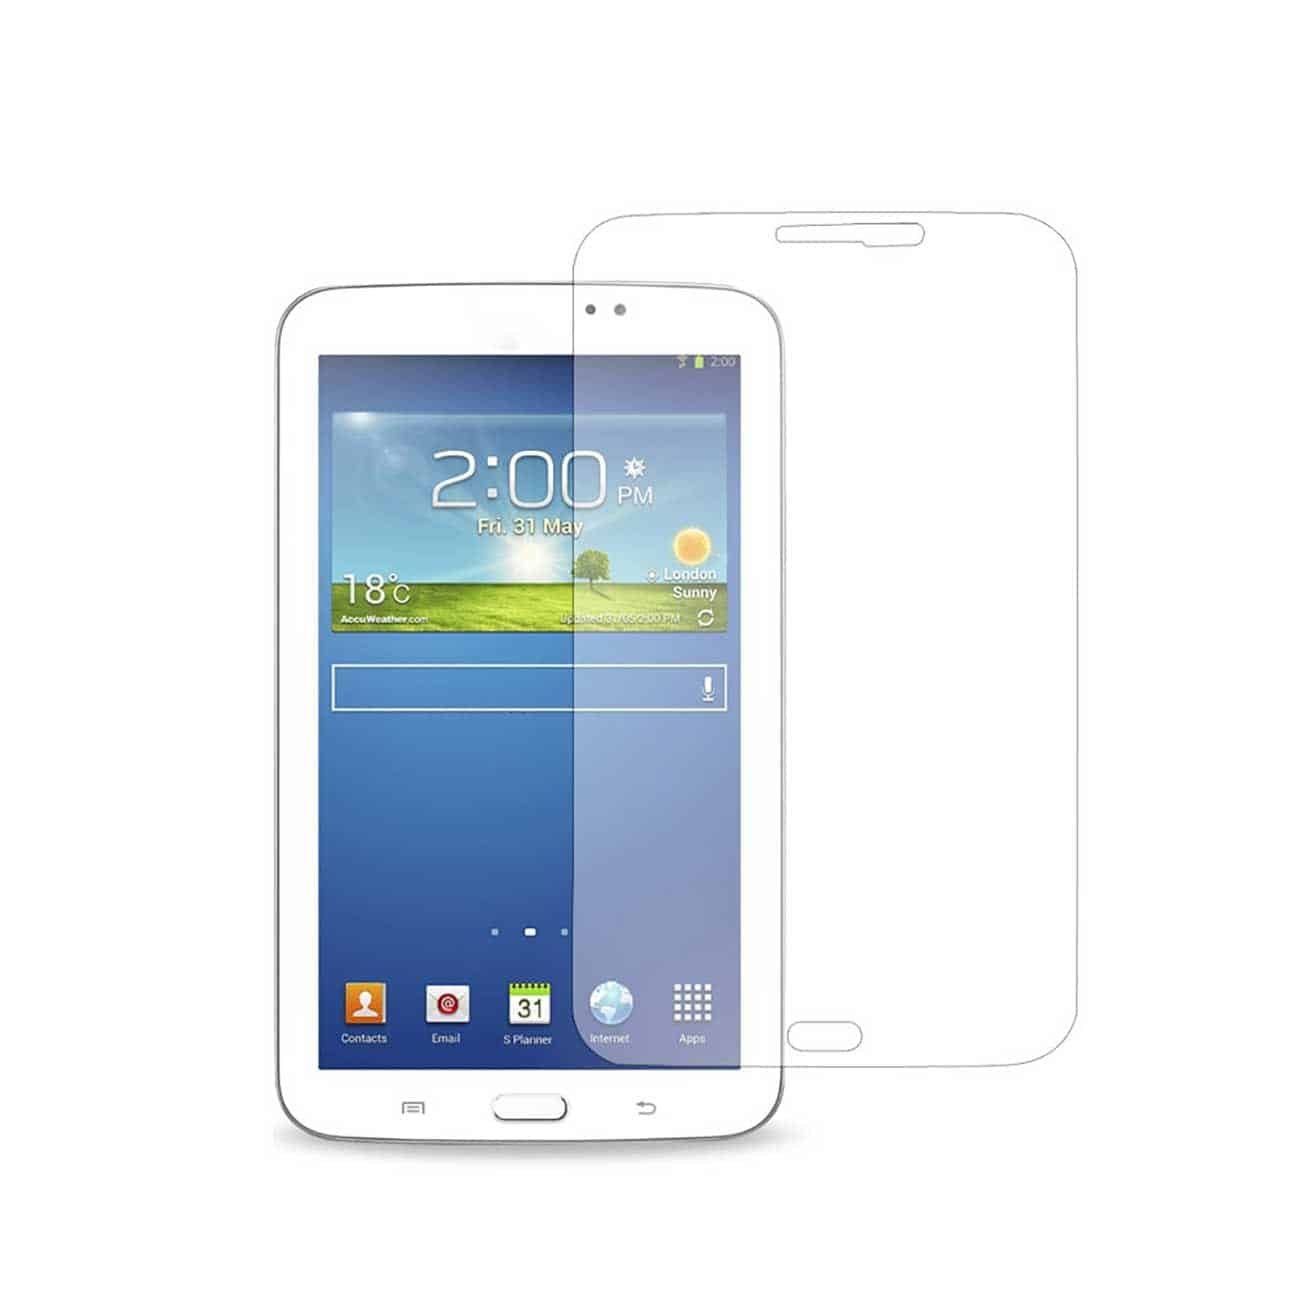 SAMSUNG GALAXY TAB 3 7.0 CLEAR SCREEN PROTECTOR IN CLEAR